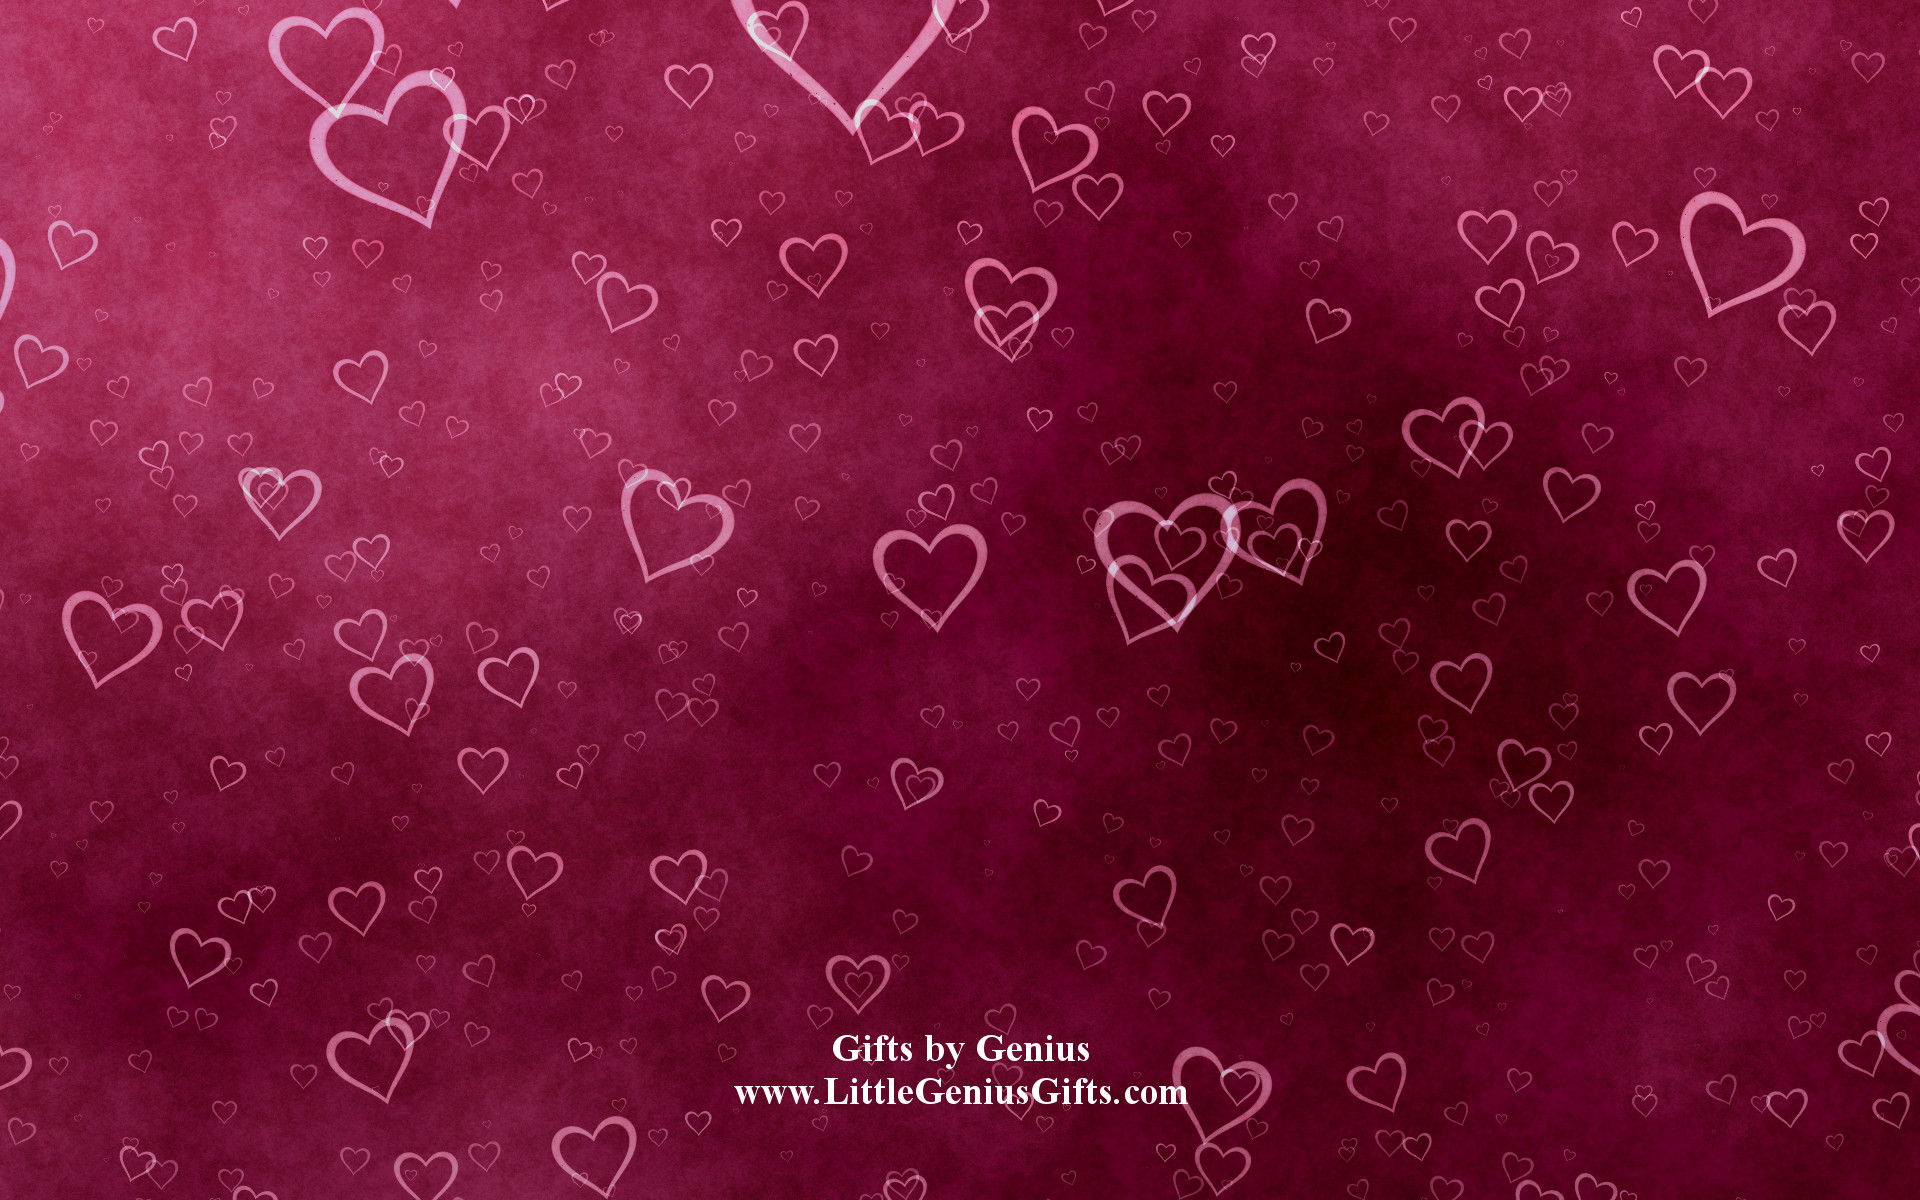 1920x1200 Free Valentine's Day Computer Desktop Wallpapers | Gifts by Genius